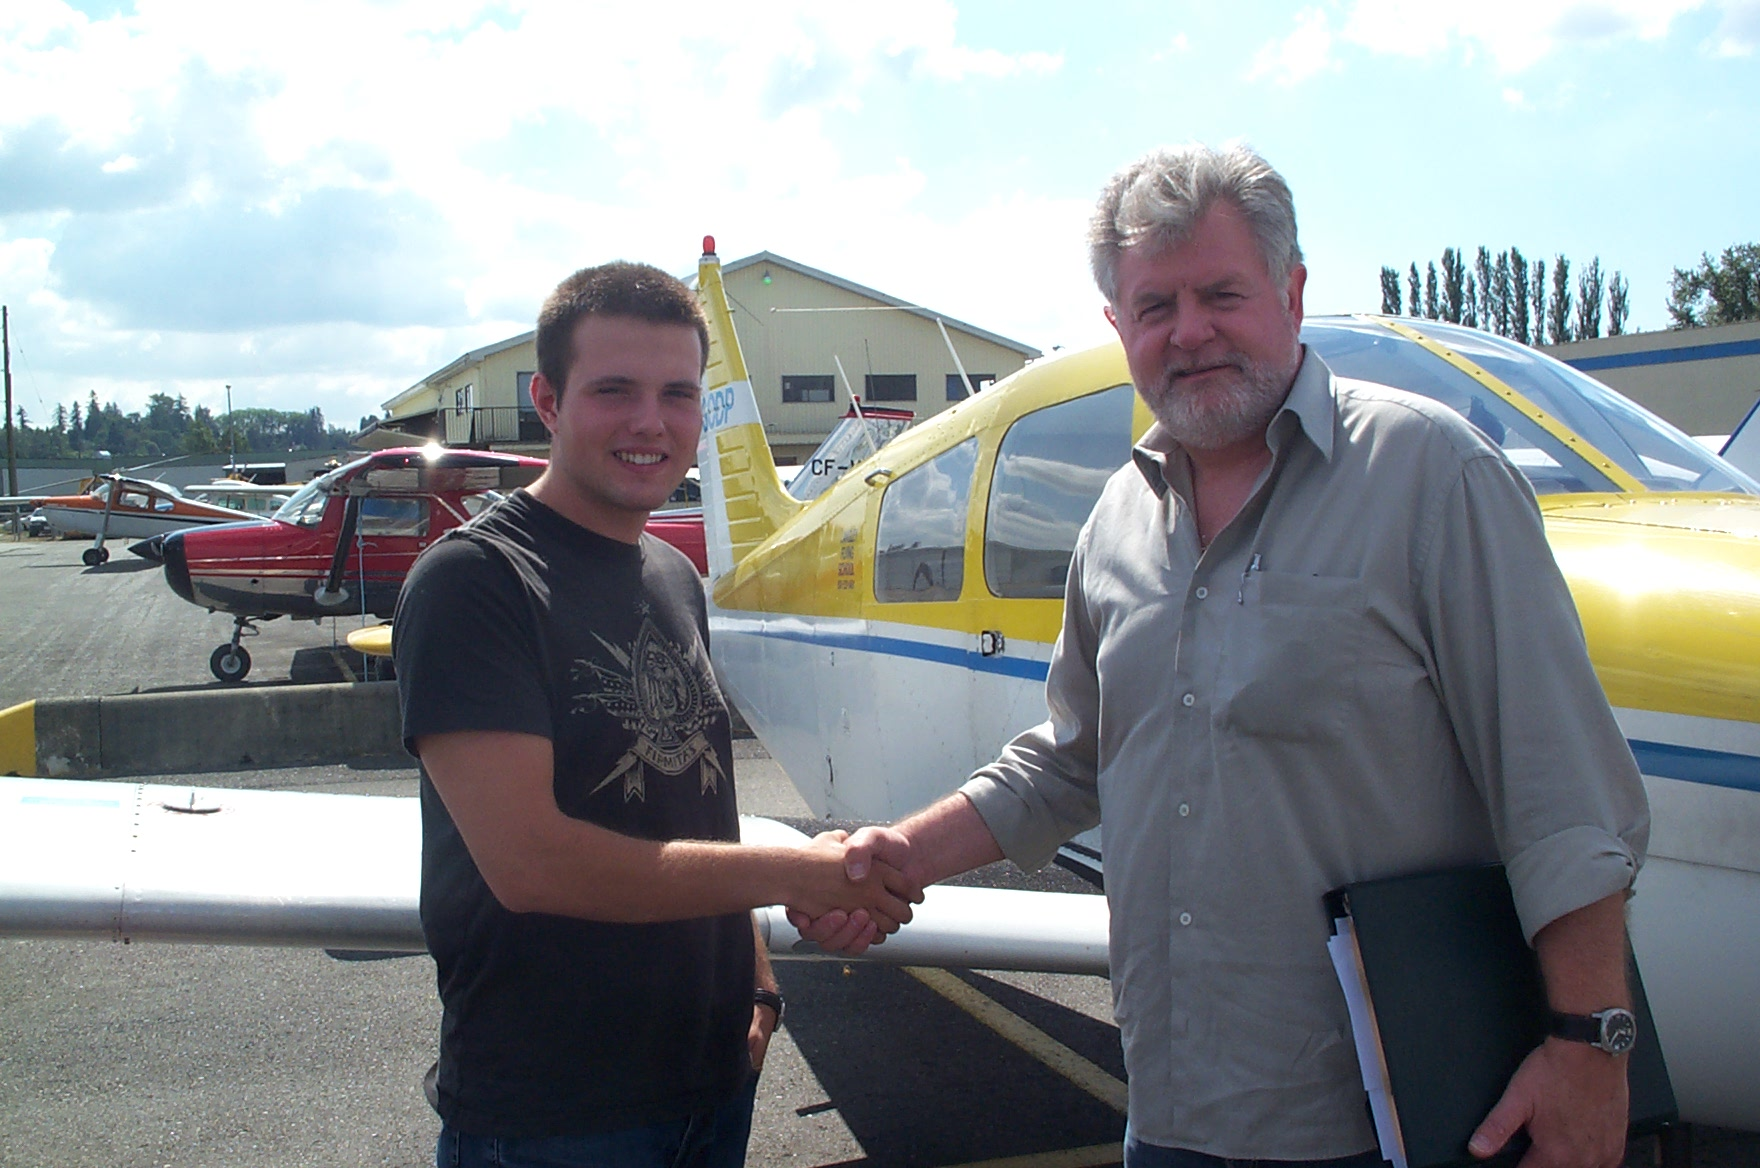 Ryan Fielding receives congrats from his Pilot Examiner Paul Harris after the successful completion of Ryan's Private Pilot Flight Test on August 30, 2010. Congratulations also to Ryan's Flight Instructor, Rita Methorst.  Langley Flying School.